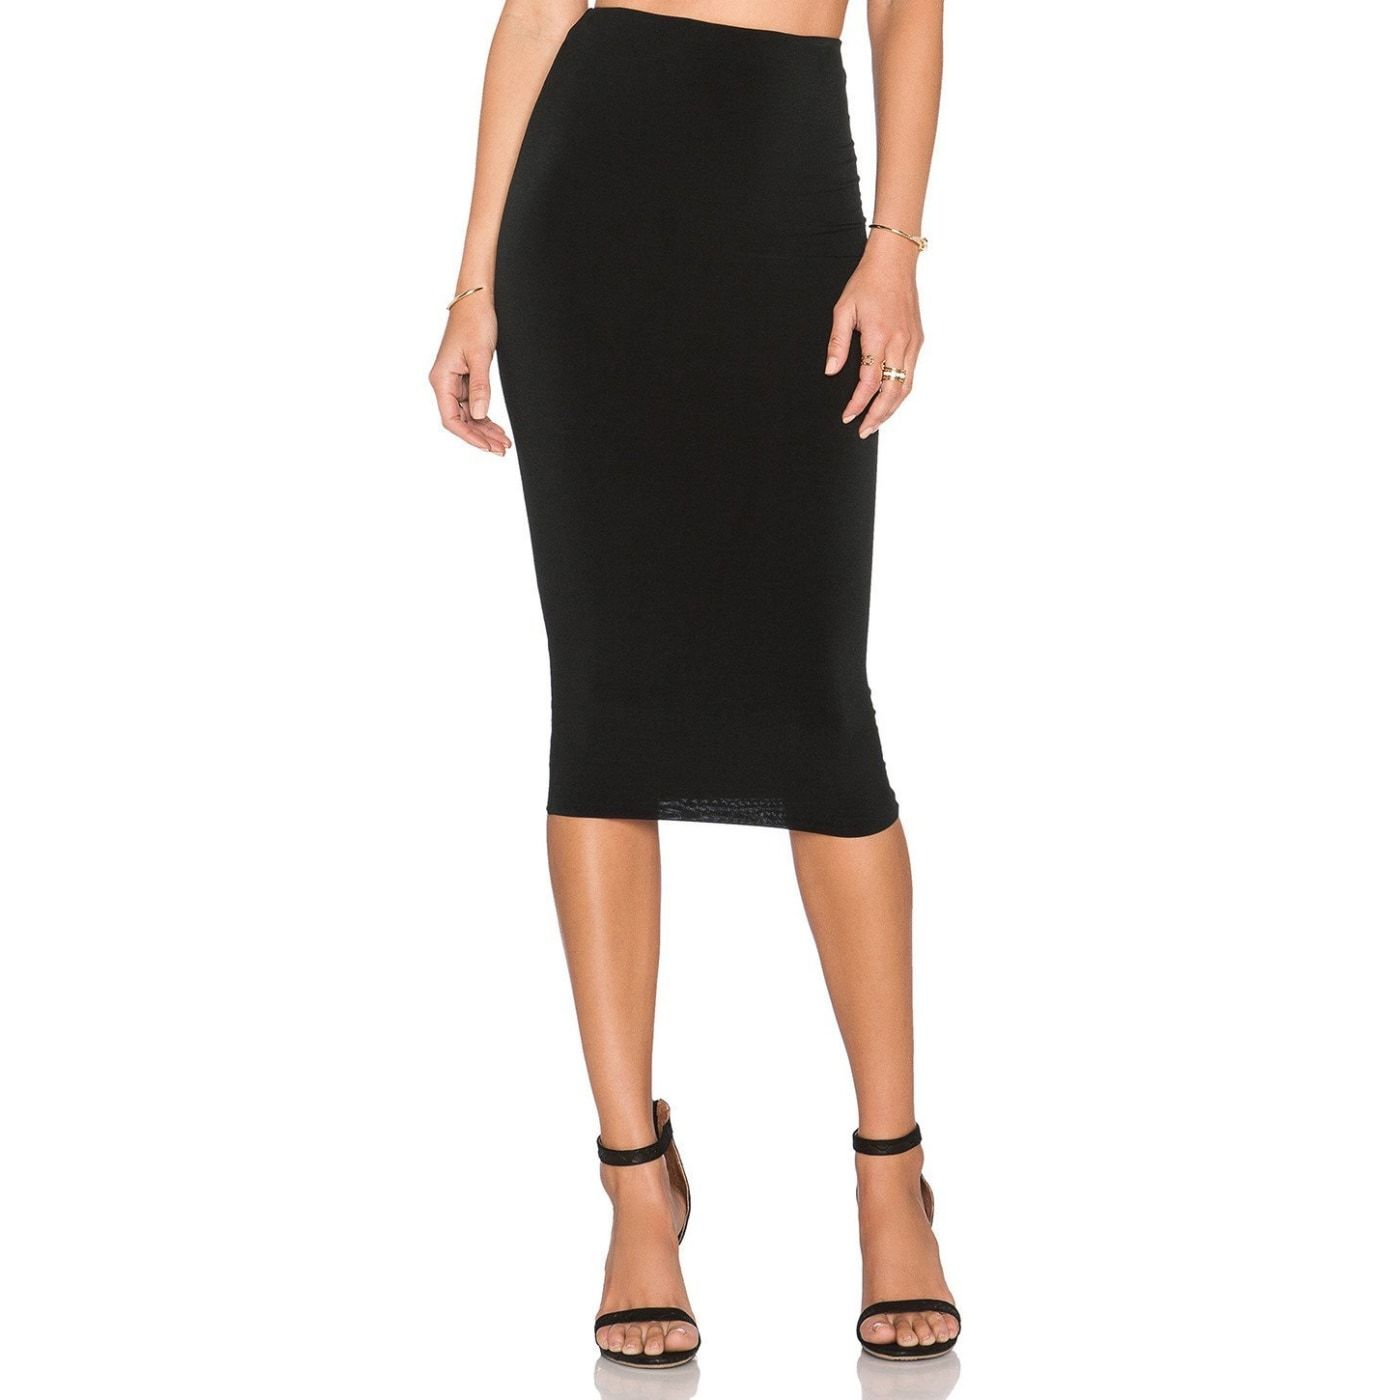 Dolce Vita Pencil Skirt - Kustom Label - 1